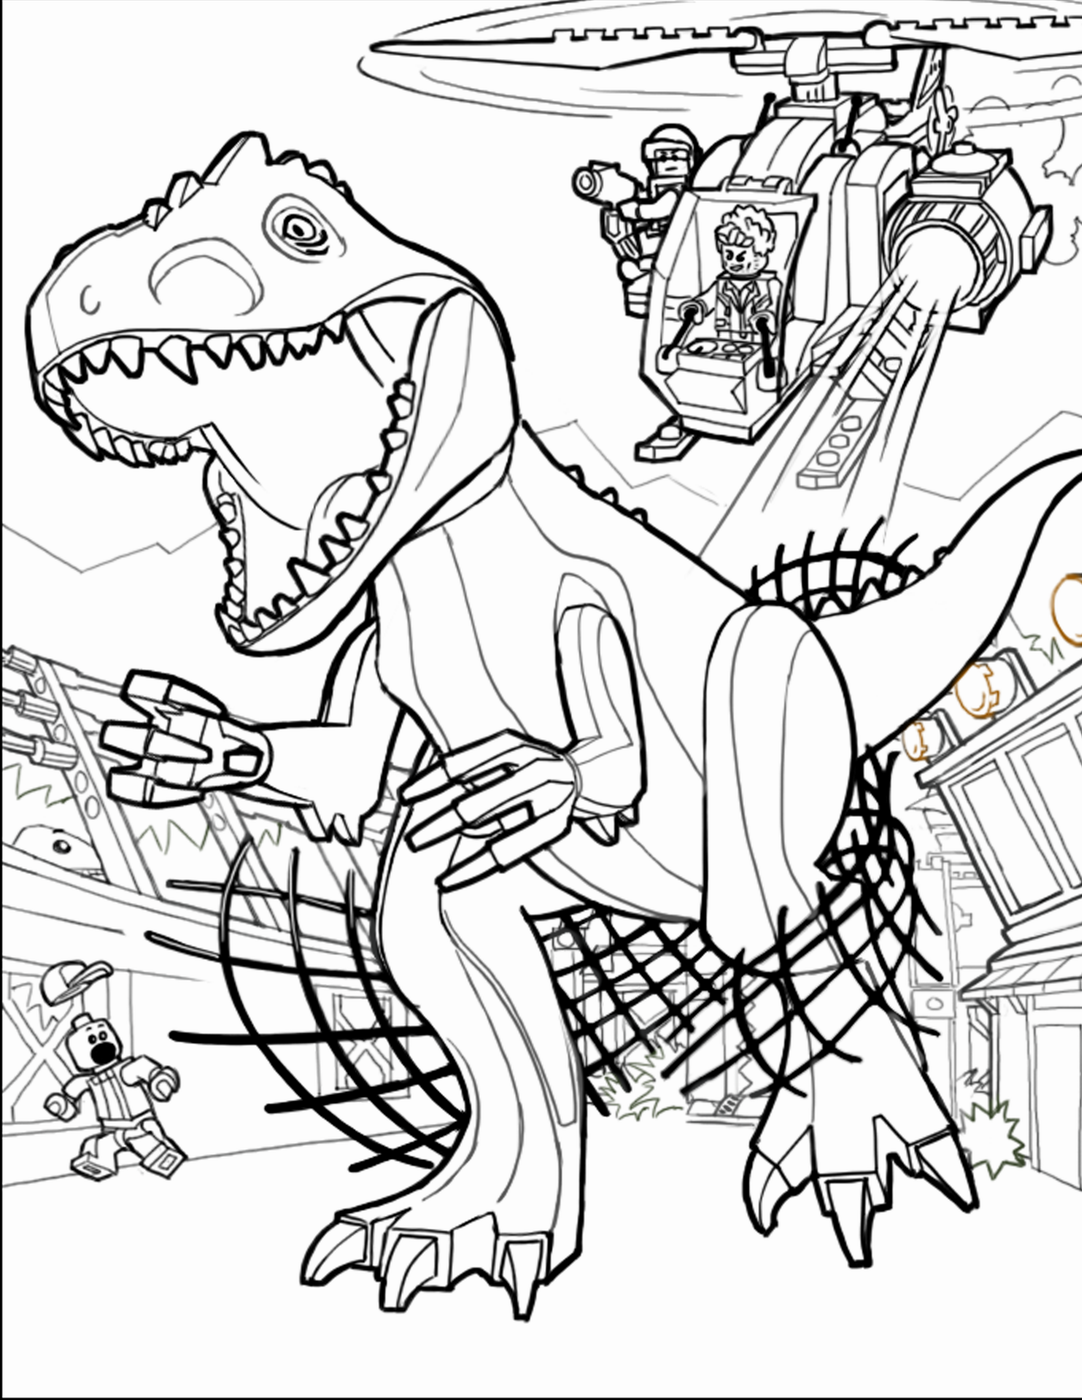 coloring pages of legos lego coloring pages jurassic world lego coloring pages pages legos coloring of